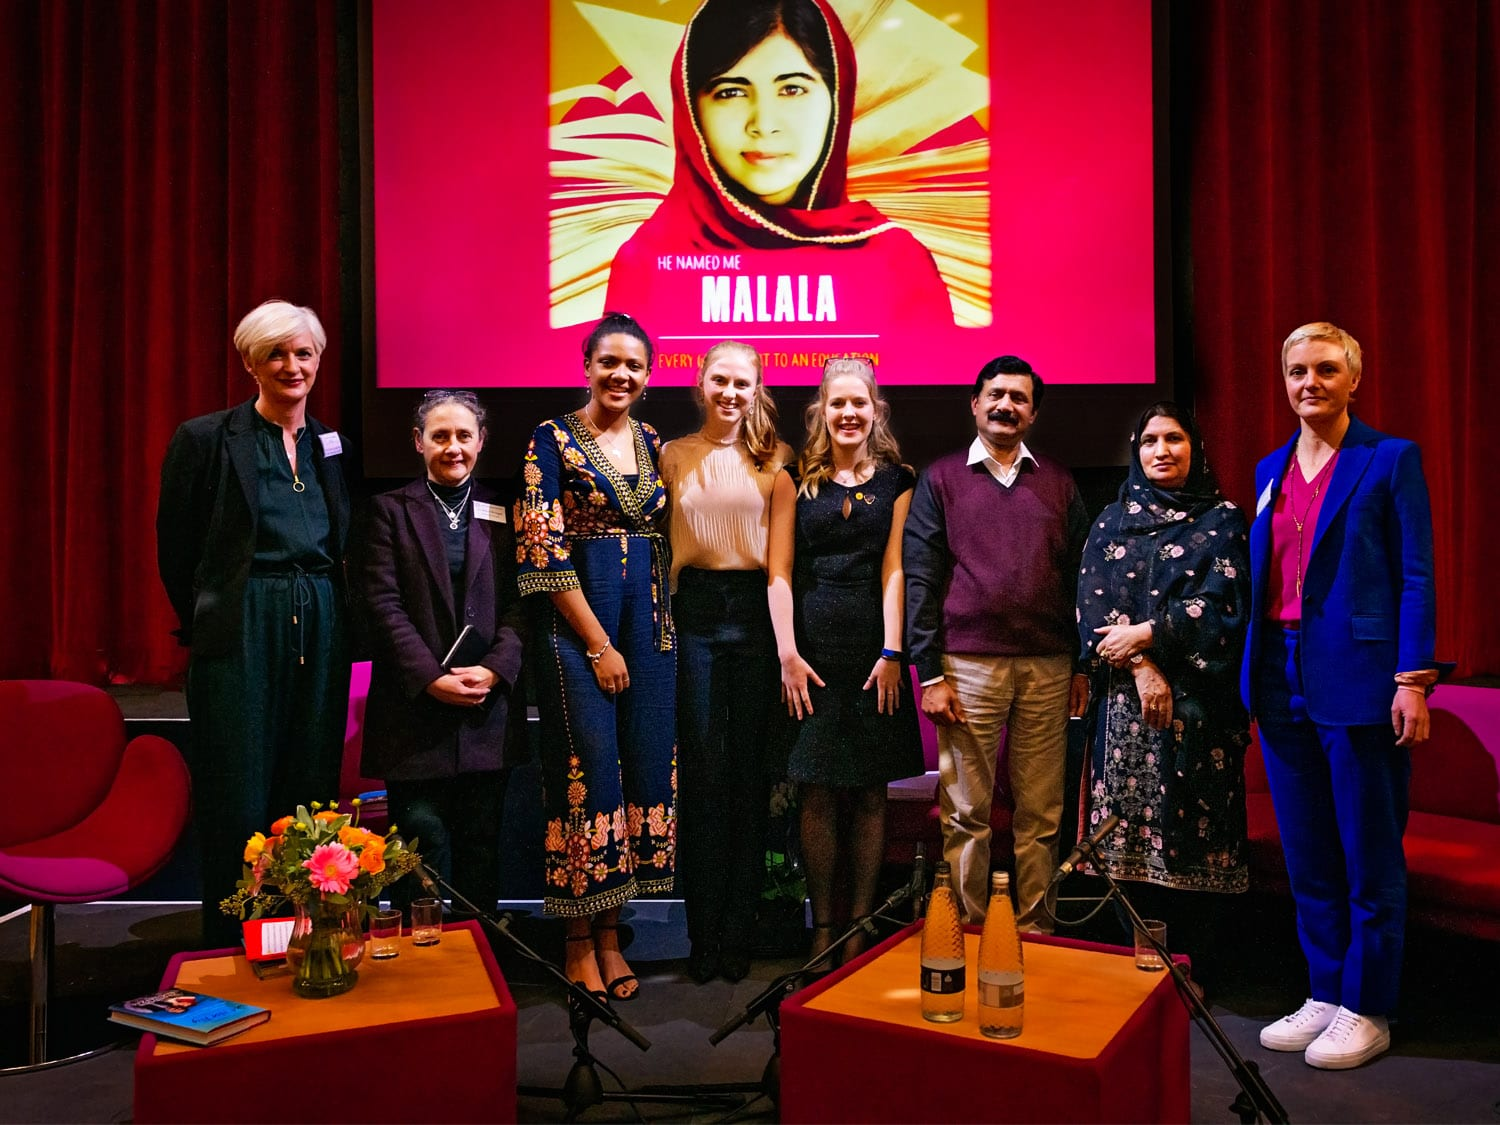 L to R: Cheryl Giovannoni, CEO, GDST, Helen Stringer, Head Oxford High School, Amina, Claudia, Alice, OHS Charity prefects, Ziauddin and Toor Pekai Yousafzai, and Gemma Mortensen